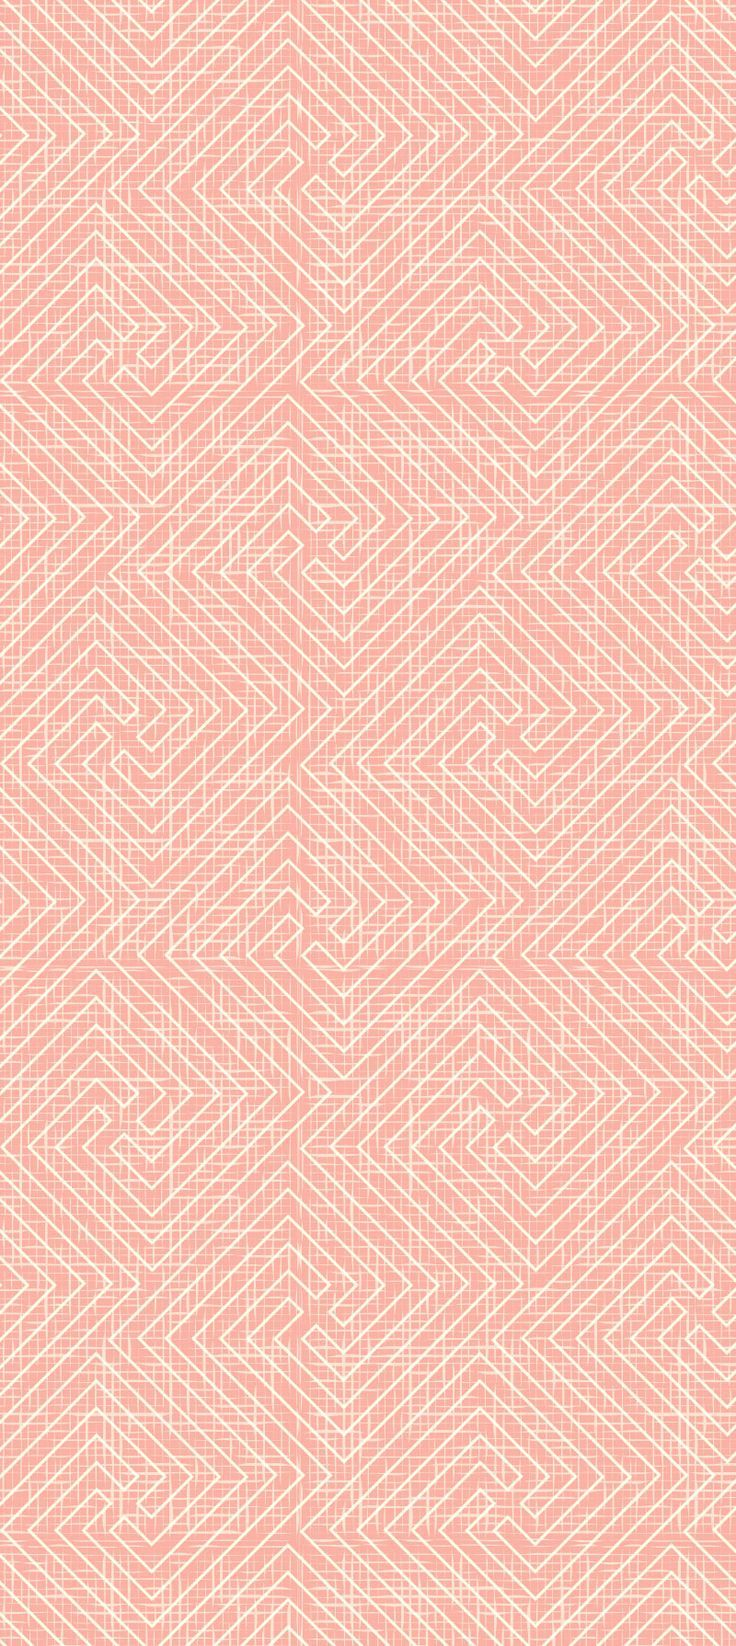 Repeating, seamless pattern with geometric labyrinth ...